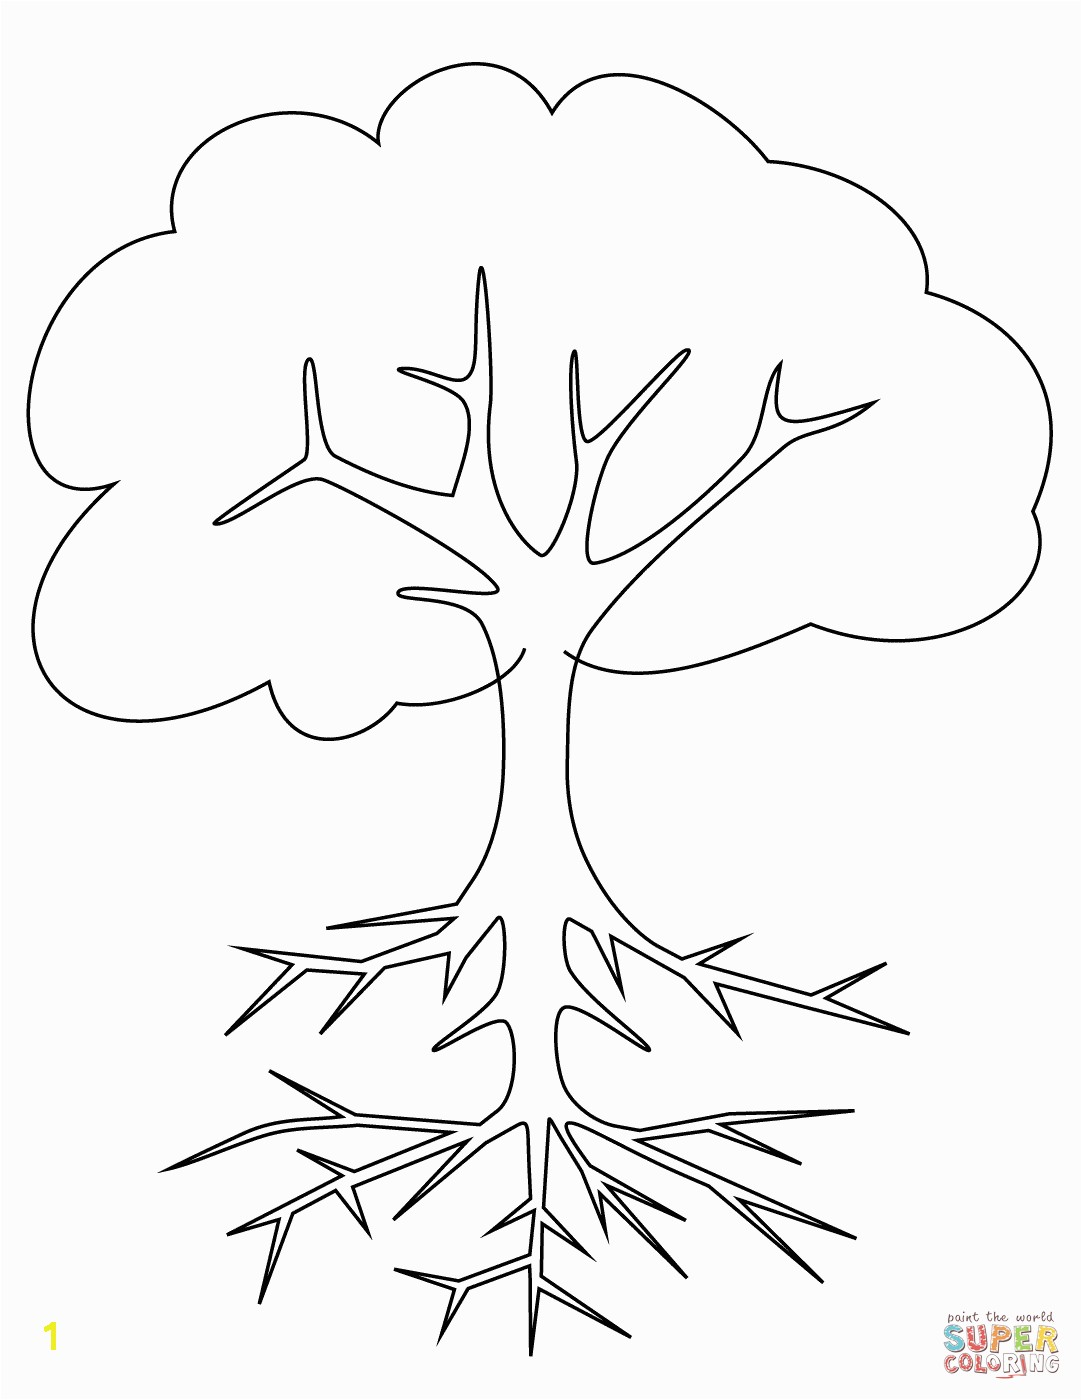 the Tree with Roots coloring pages